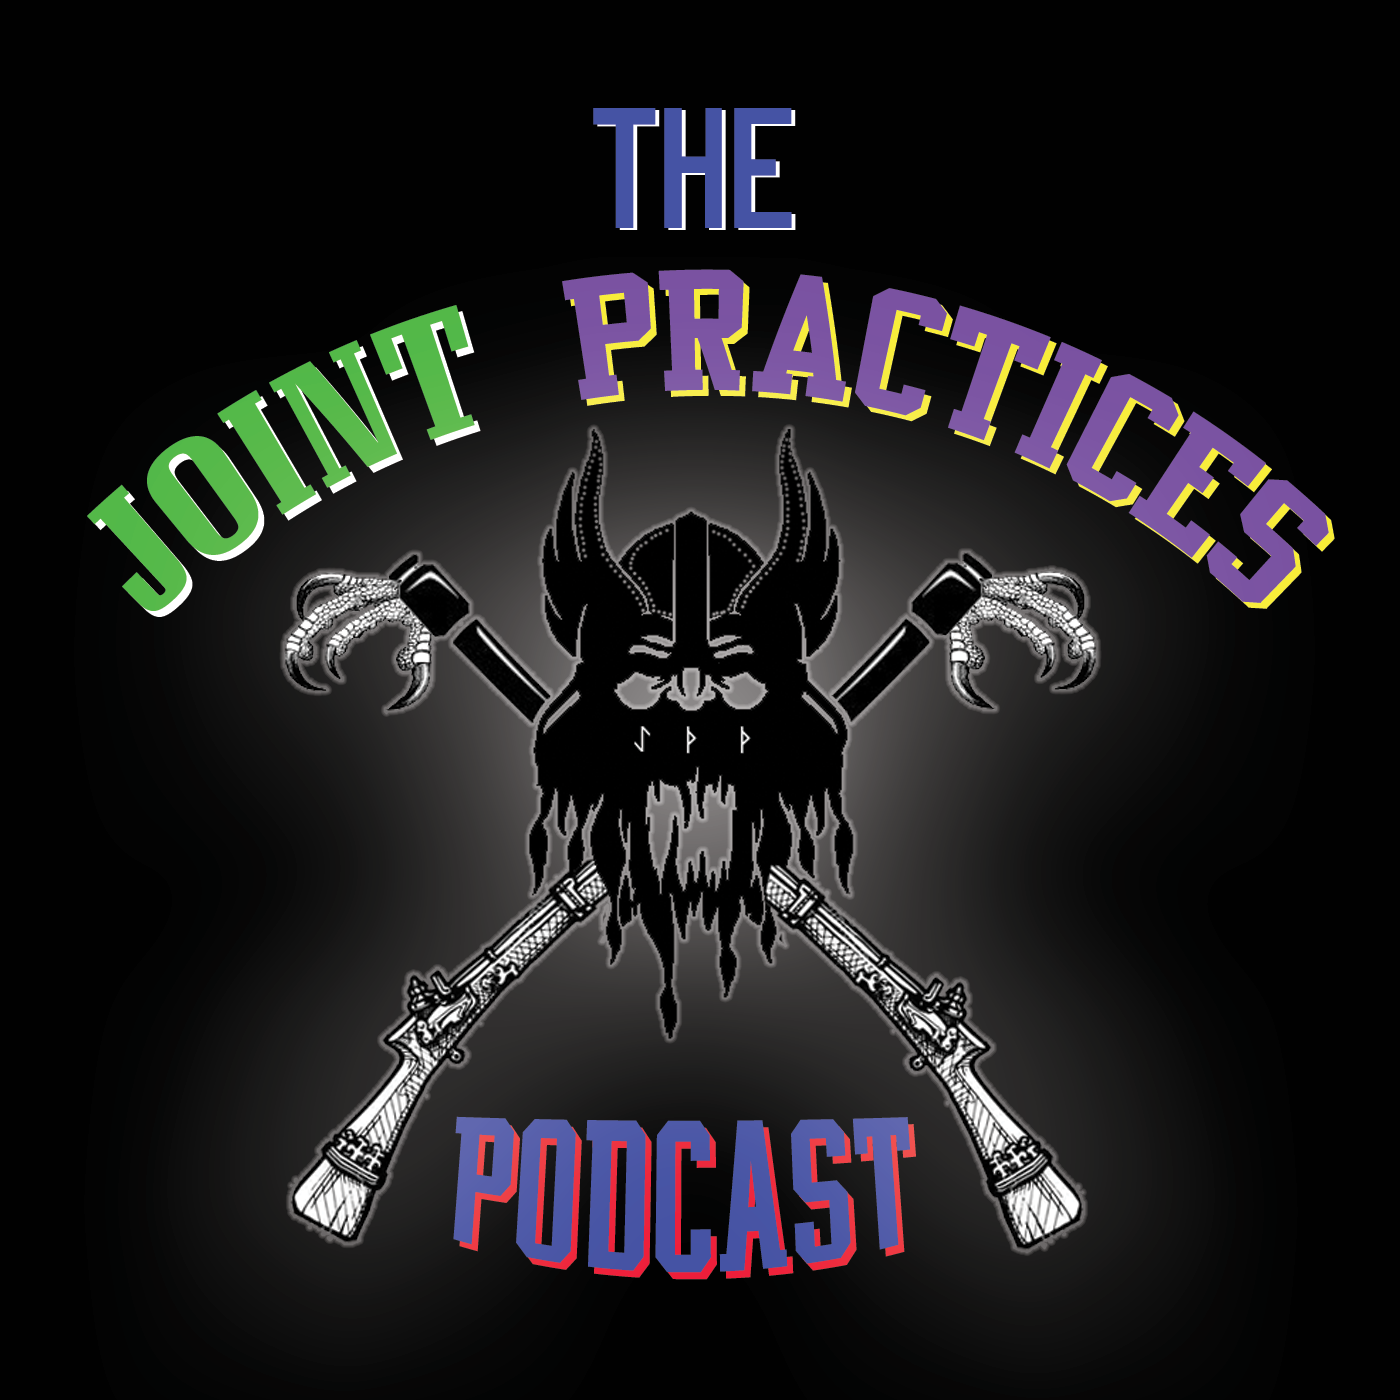 Joint Practices Podcast